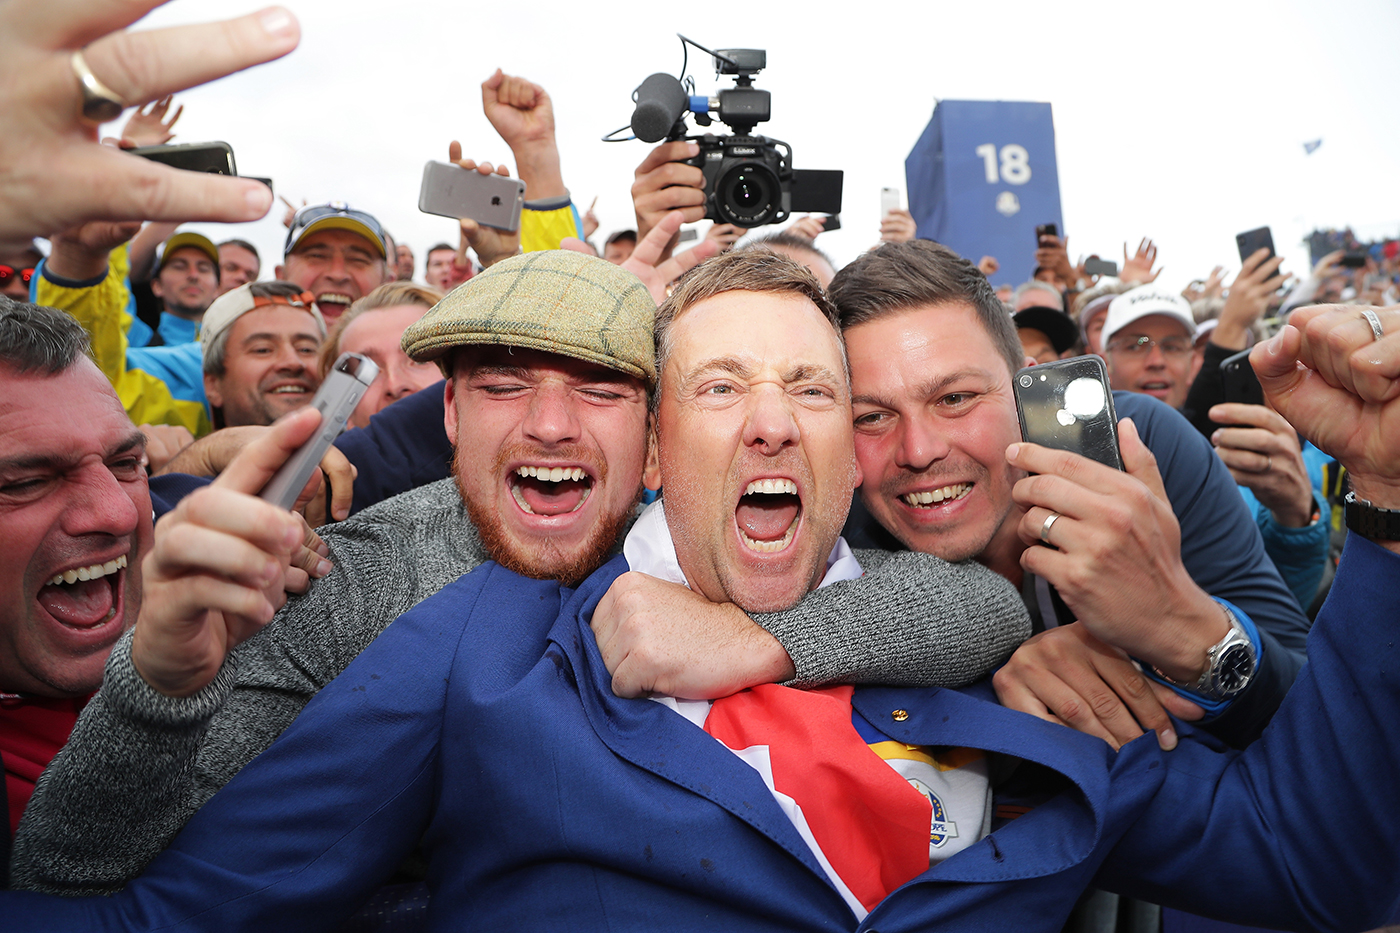 Ryder Cup 2020 Billeterie.How To Get Tickets For The 2020 Ryder Cup